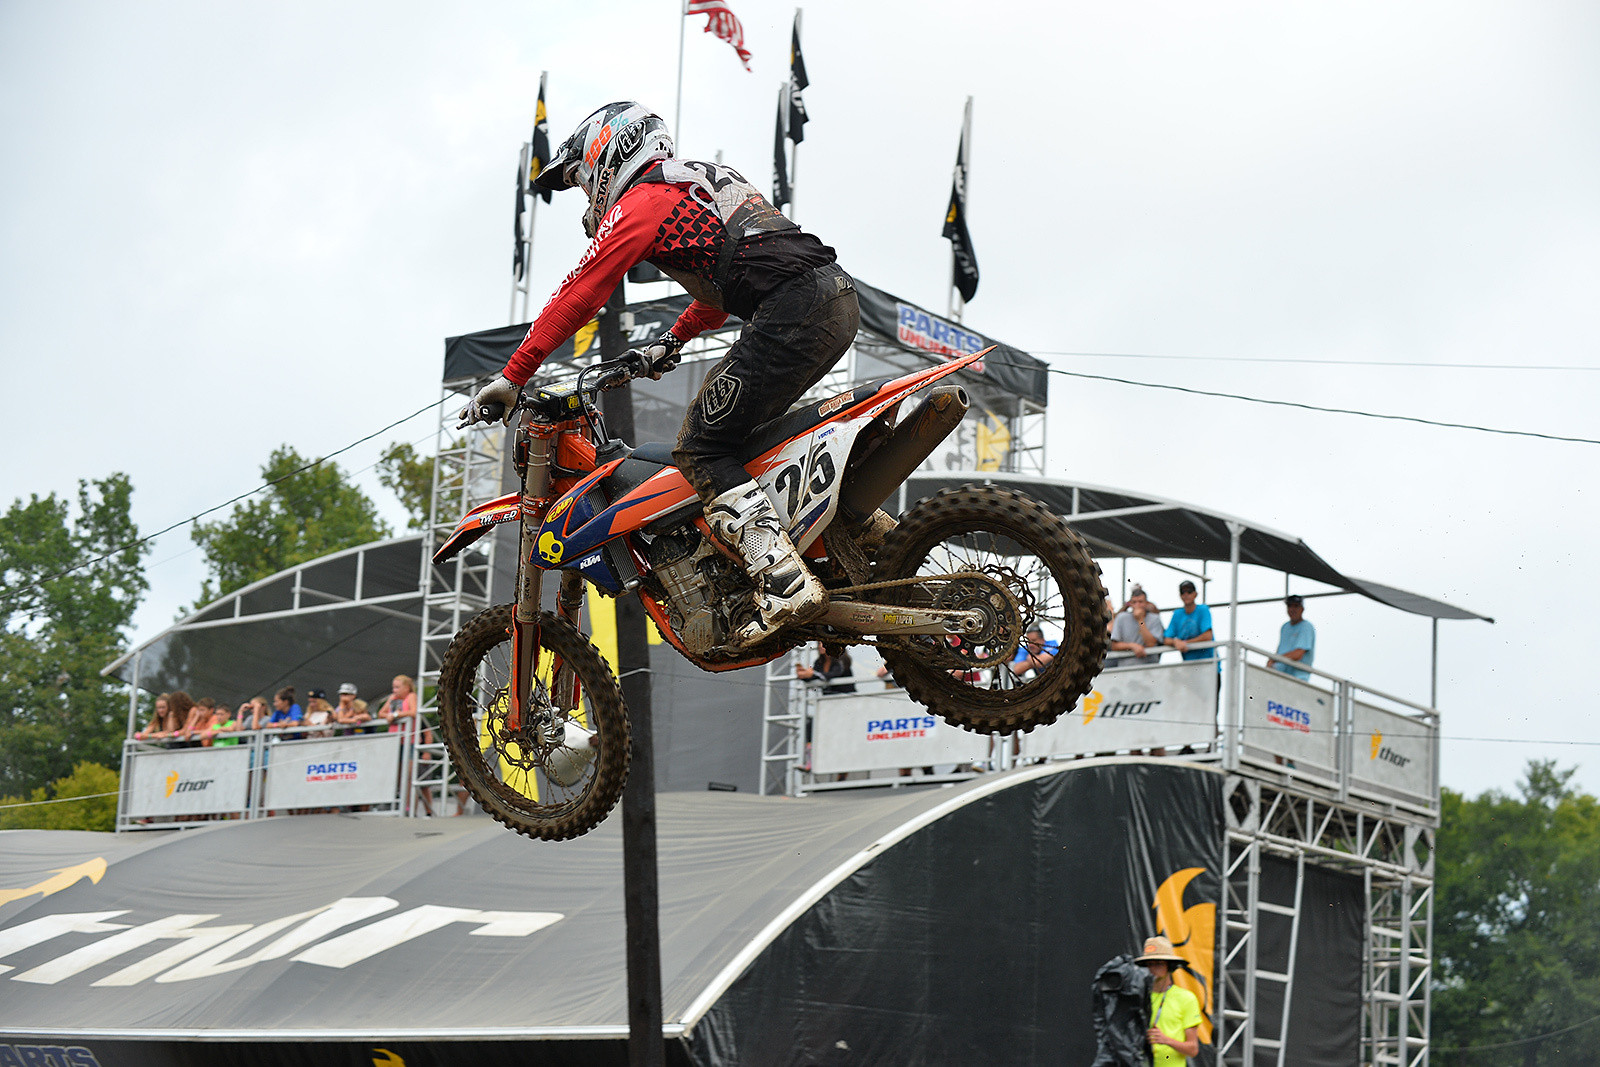 9-2-2 Moto scores earned KTM's Nathan Ramsey a third overall in the Senior (40+) class at Loretta Lynn's.